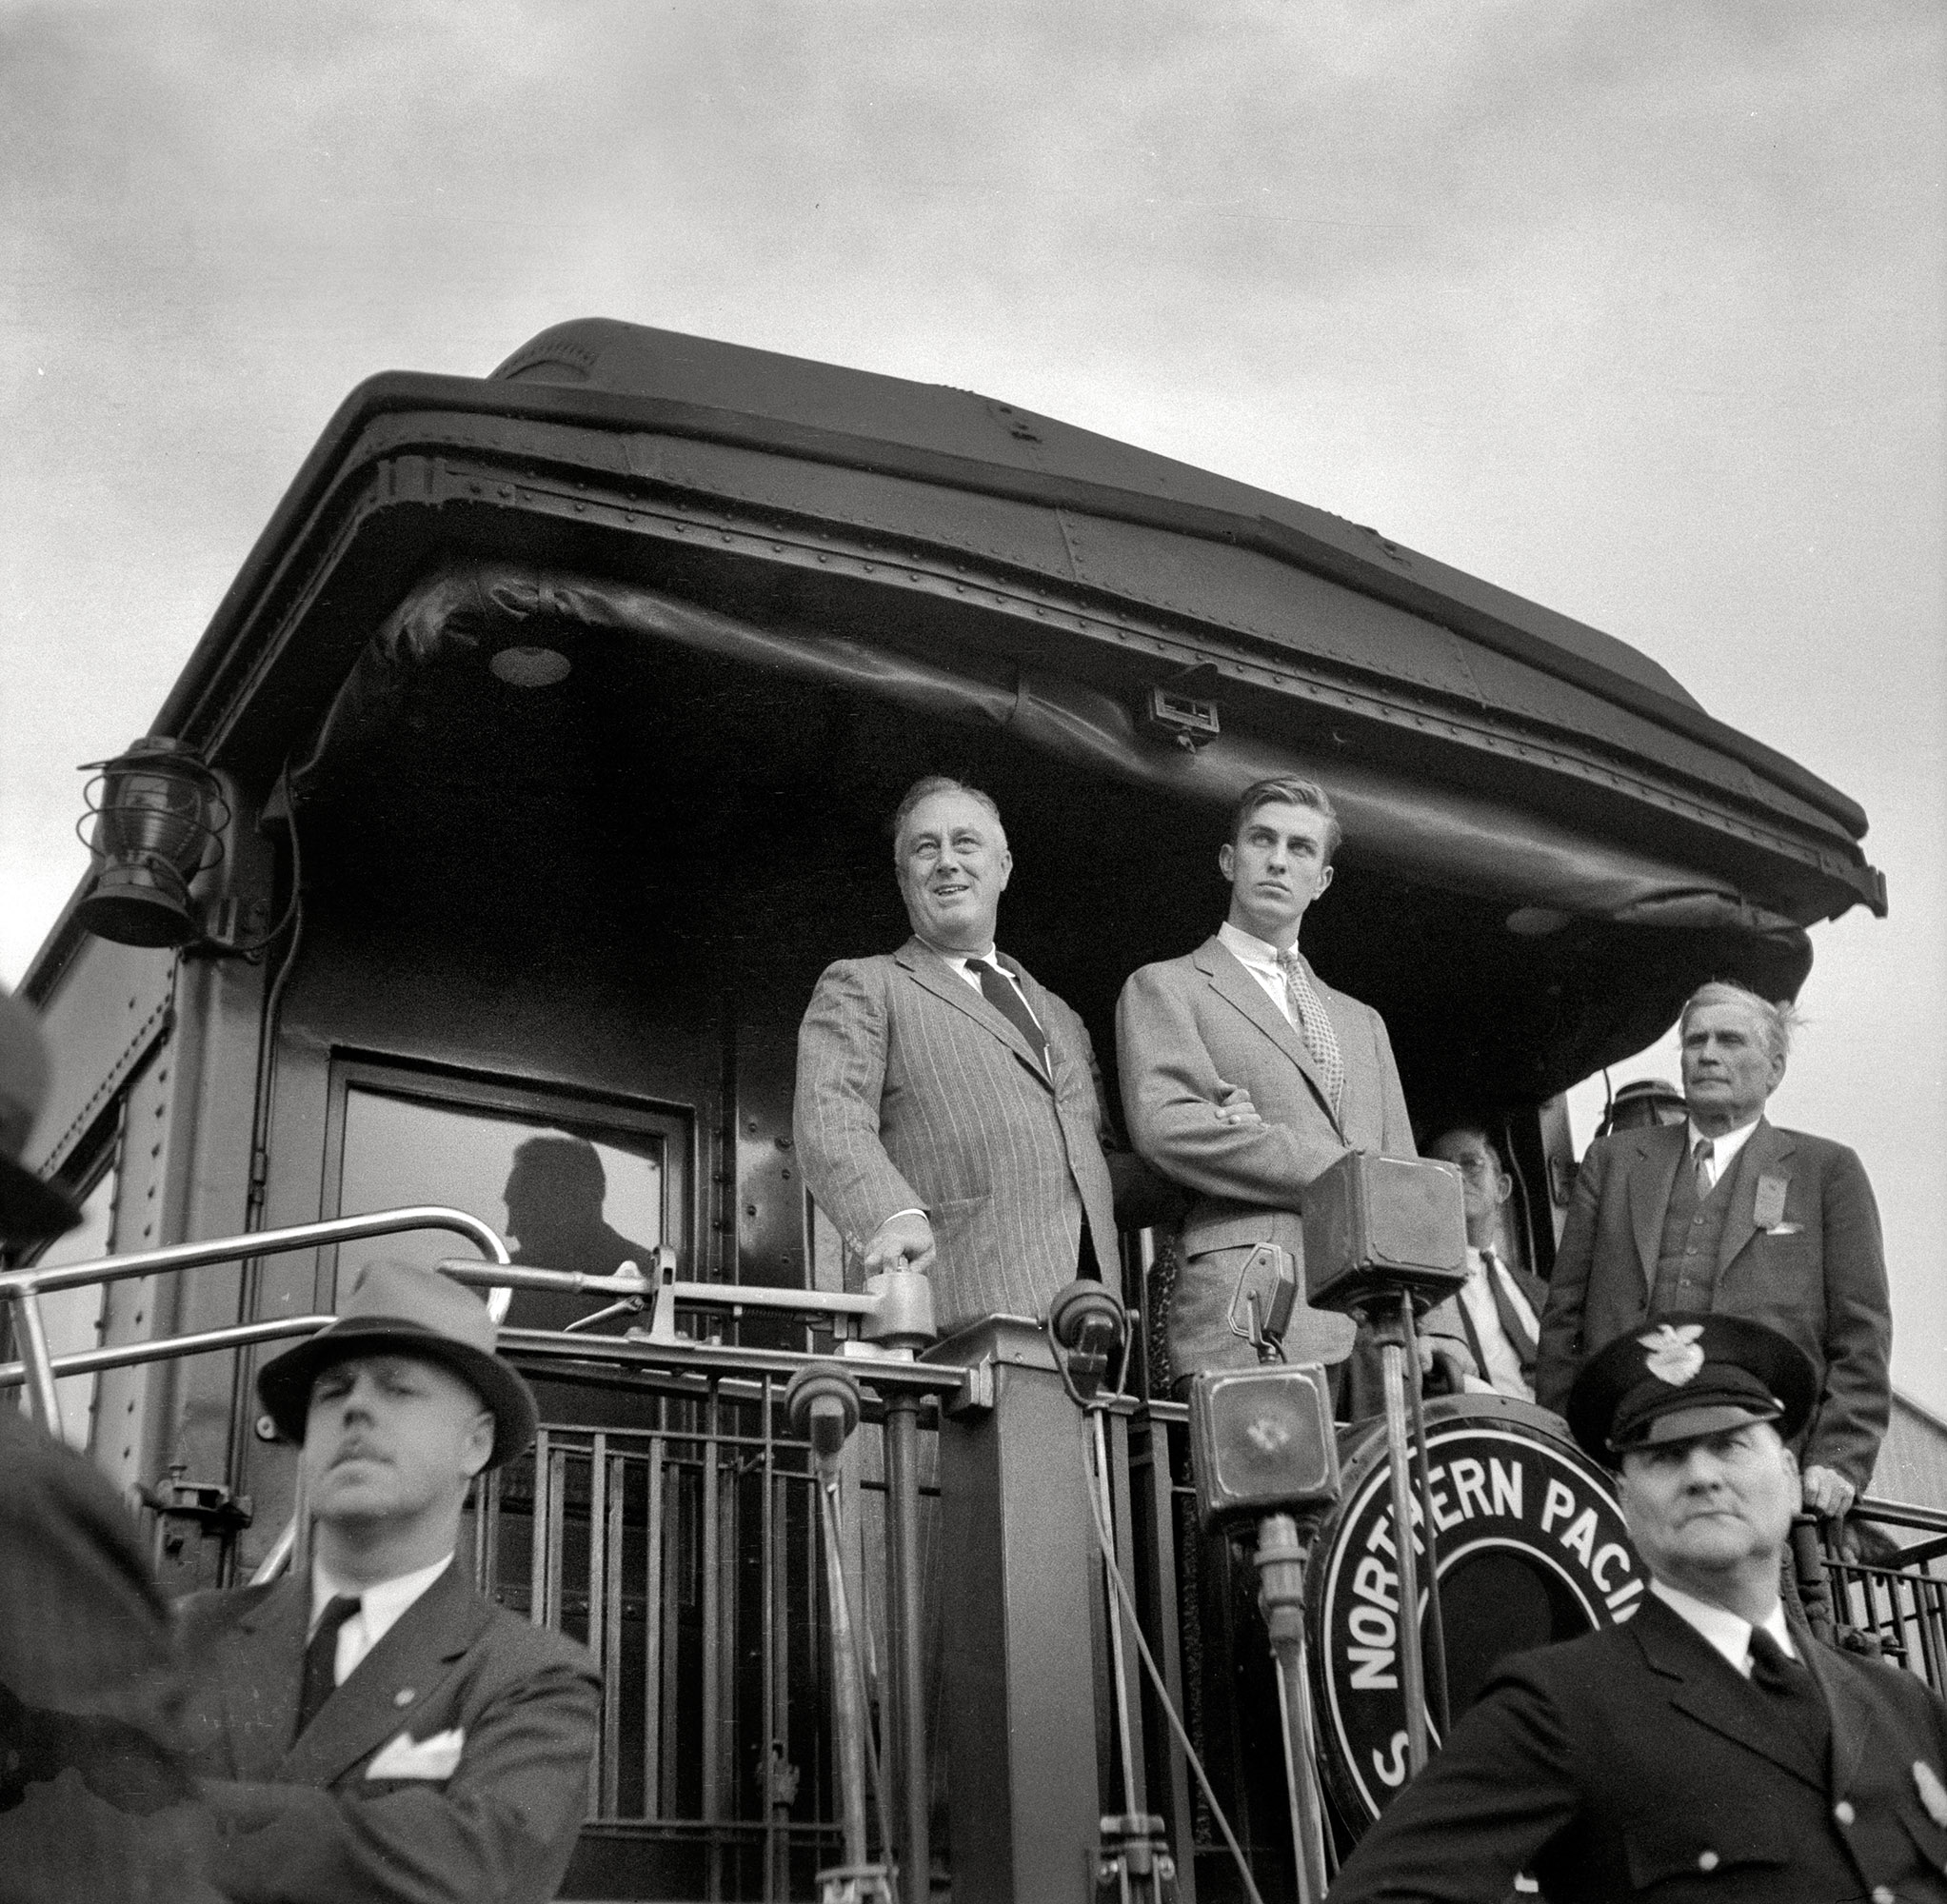 August 1936.  Tour of drought area. President Roosevelt speaking from train at Bismarck, North Dakota.